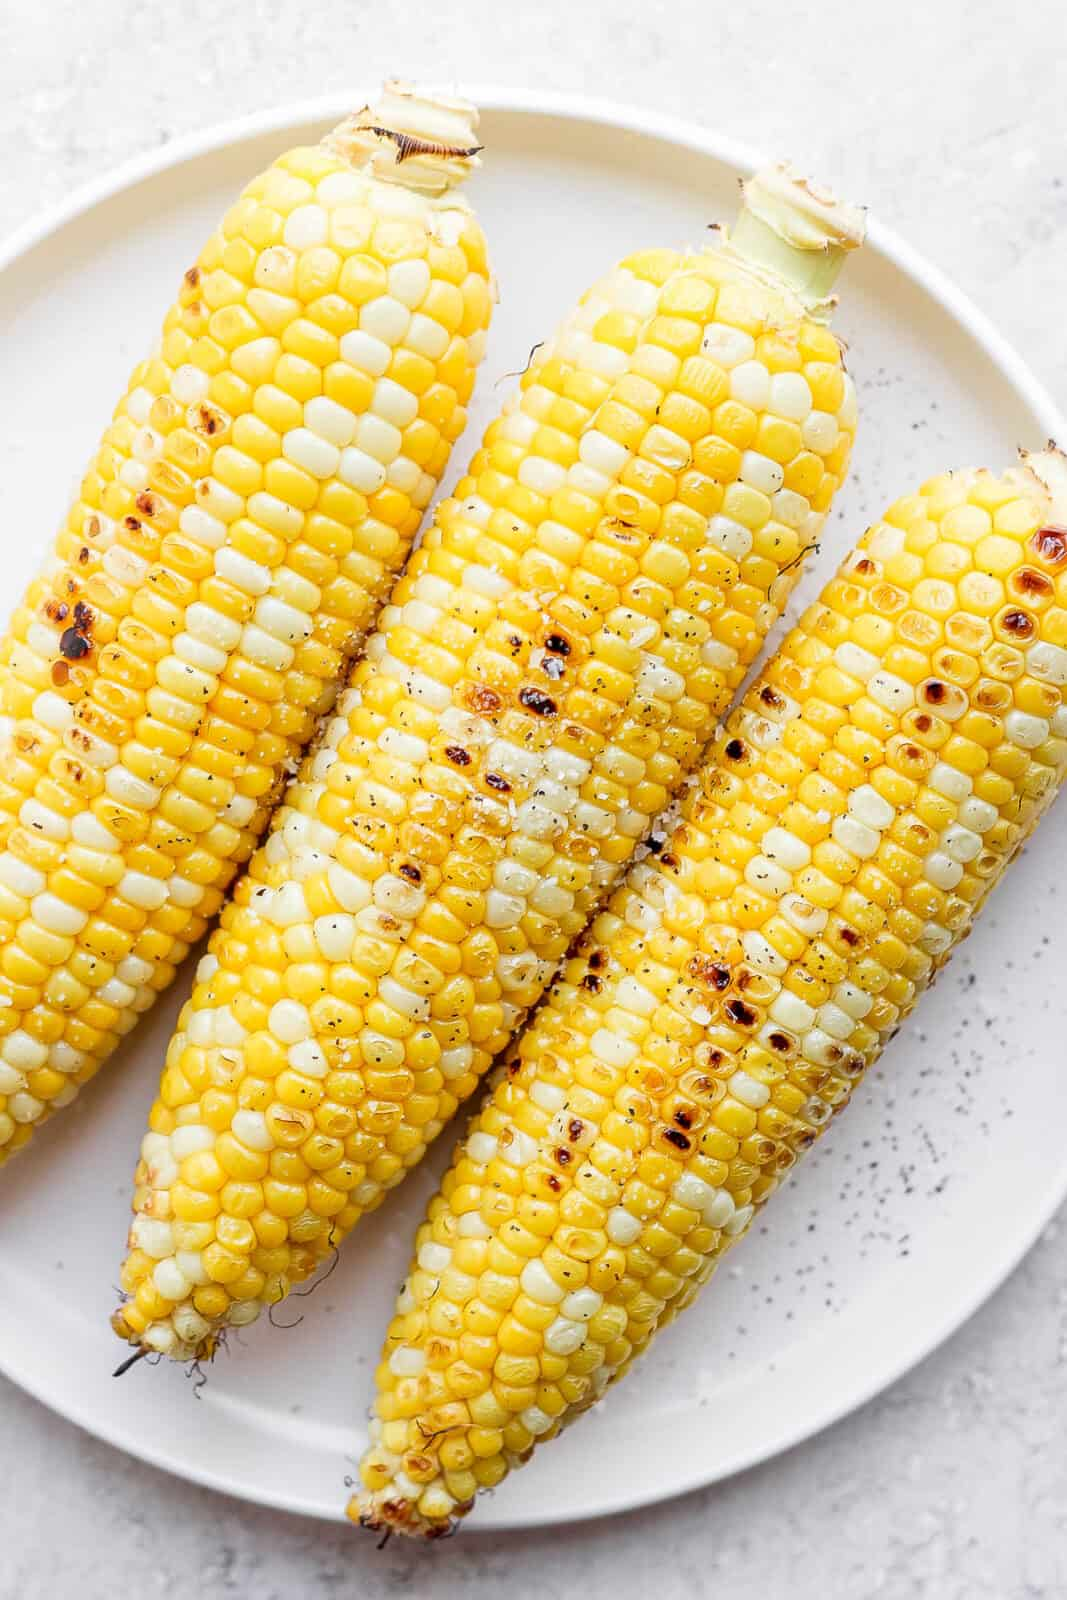 3 ears of grilled corn on the cob on a plate.